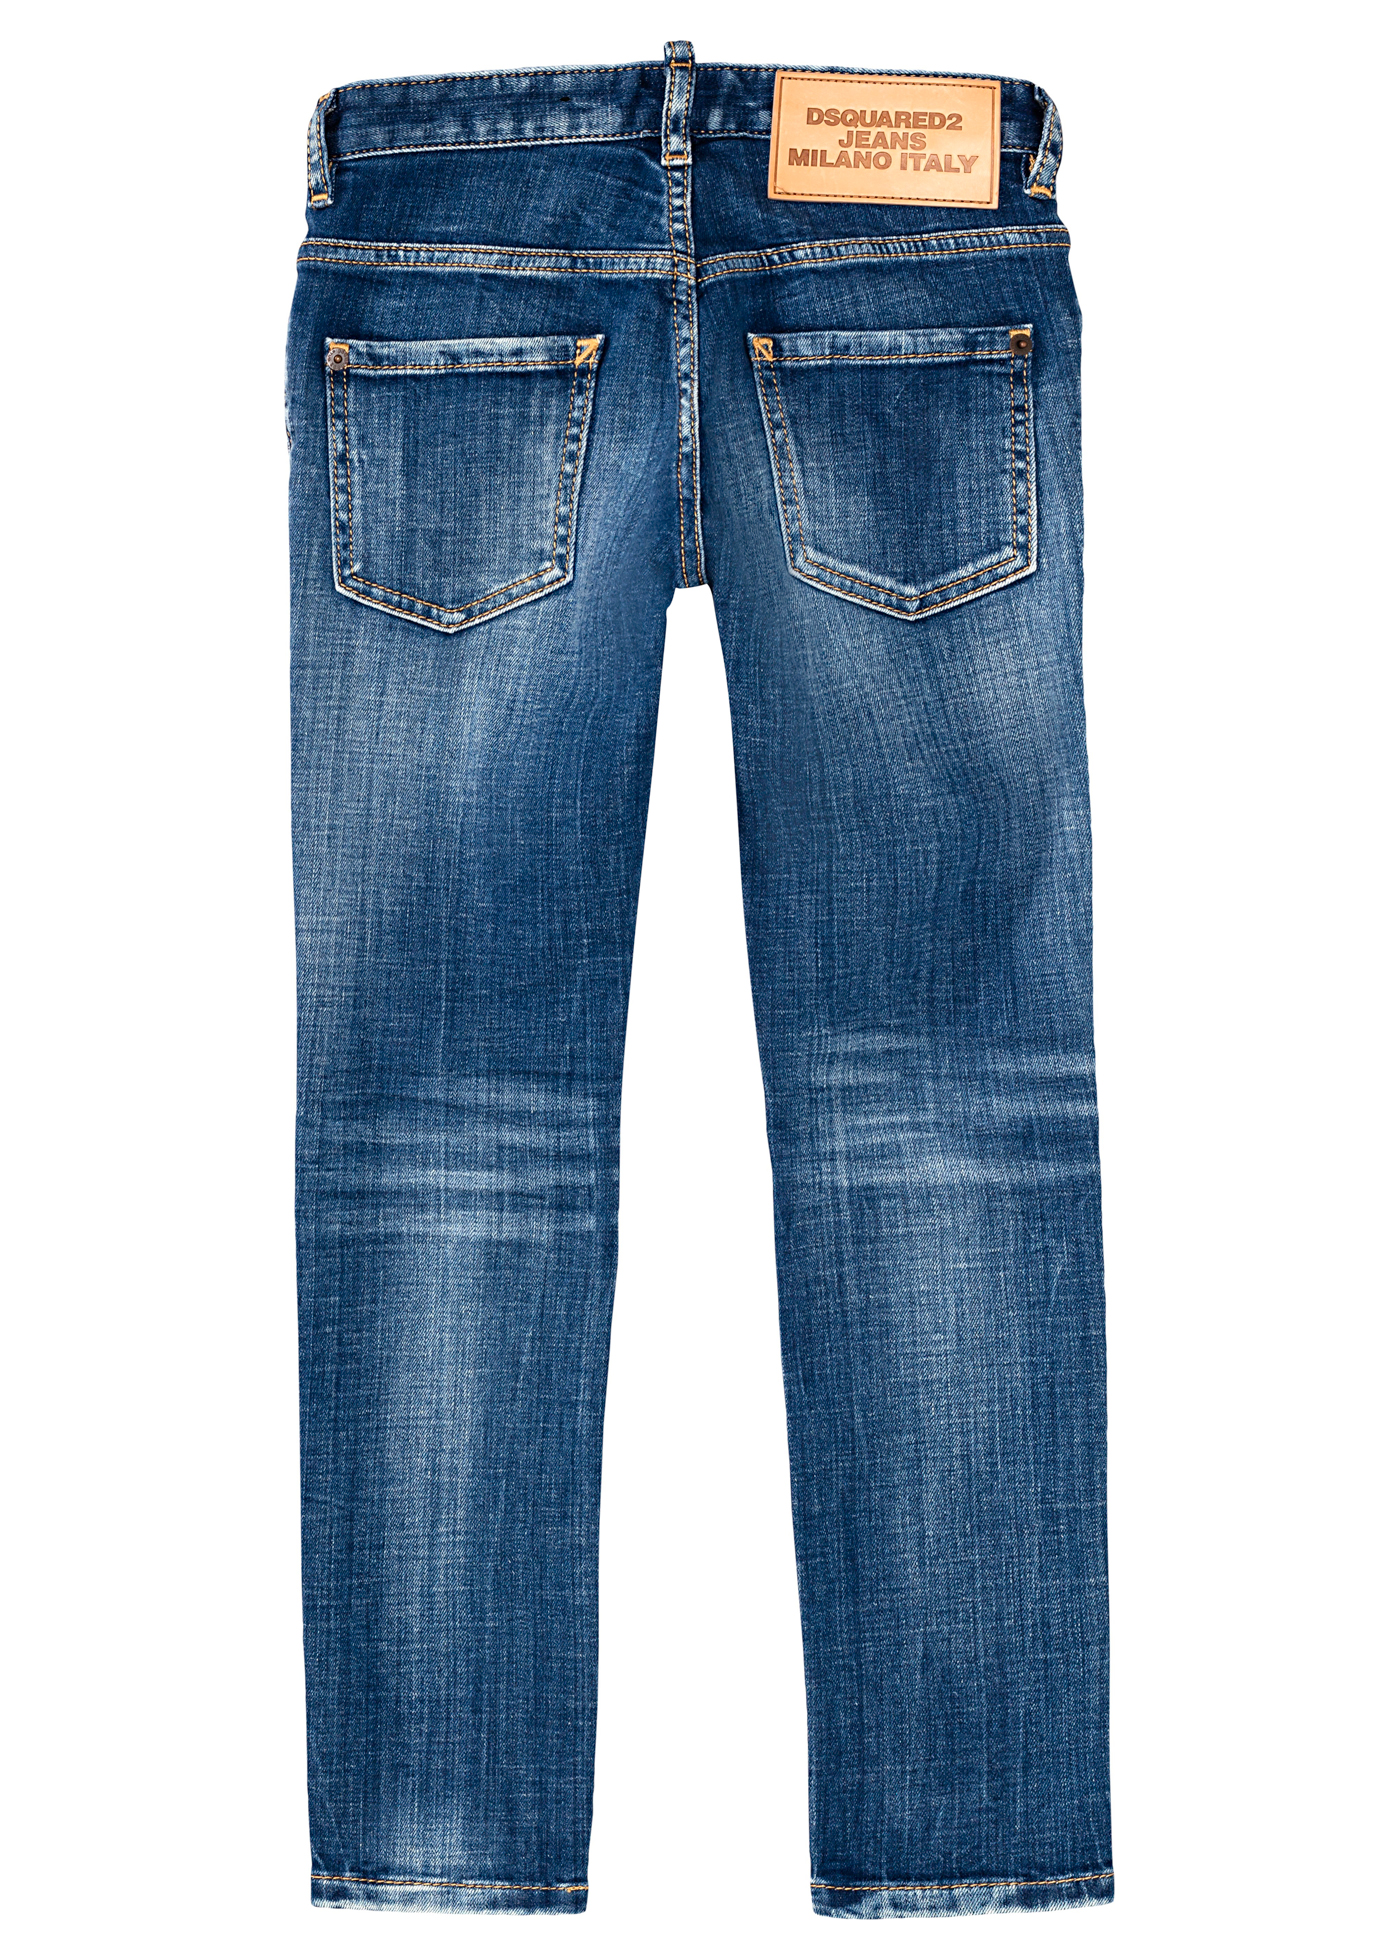 SKATER JEAN TROUSERS image number 1